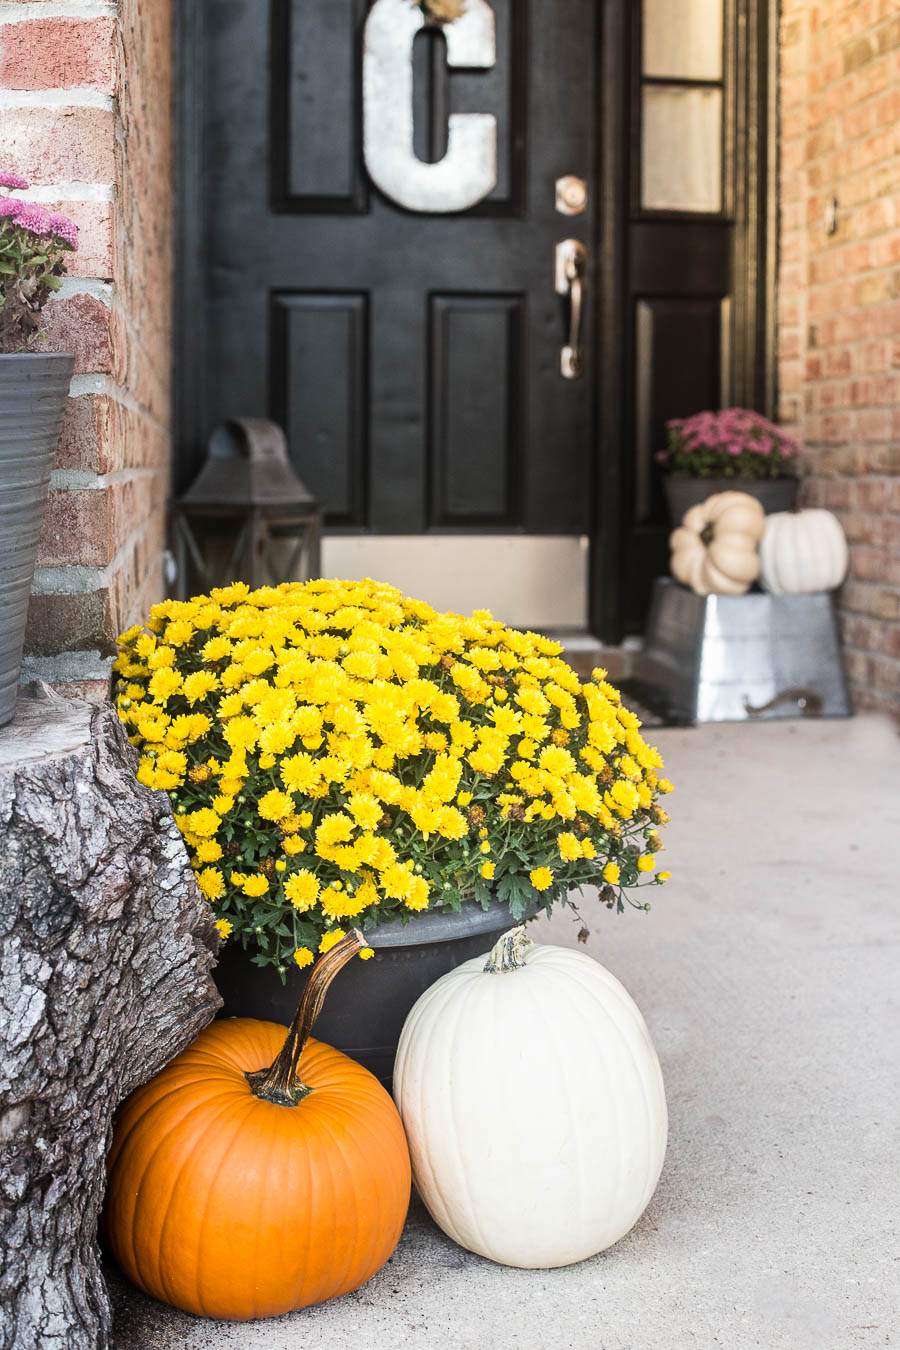 Easy 5 Minute Fall Porch Decorating